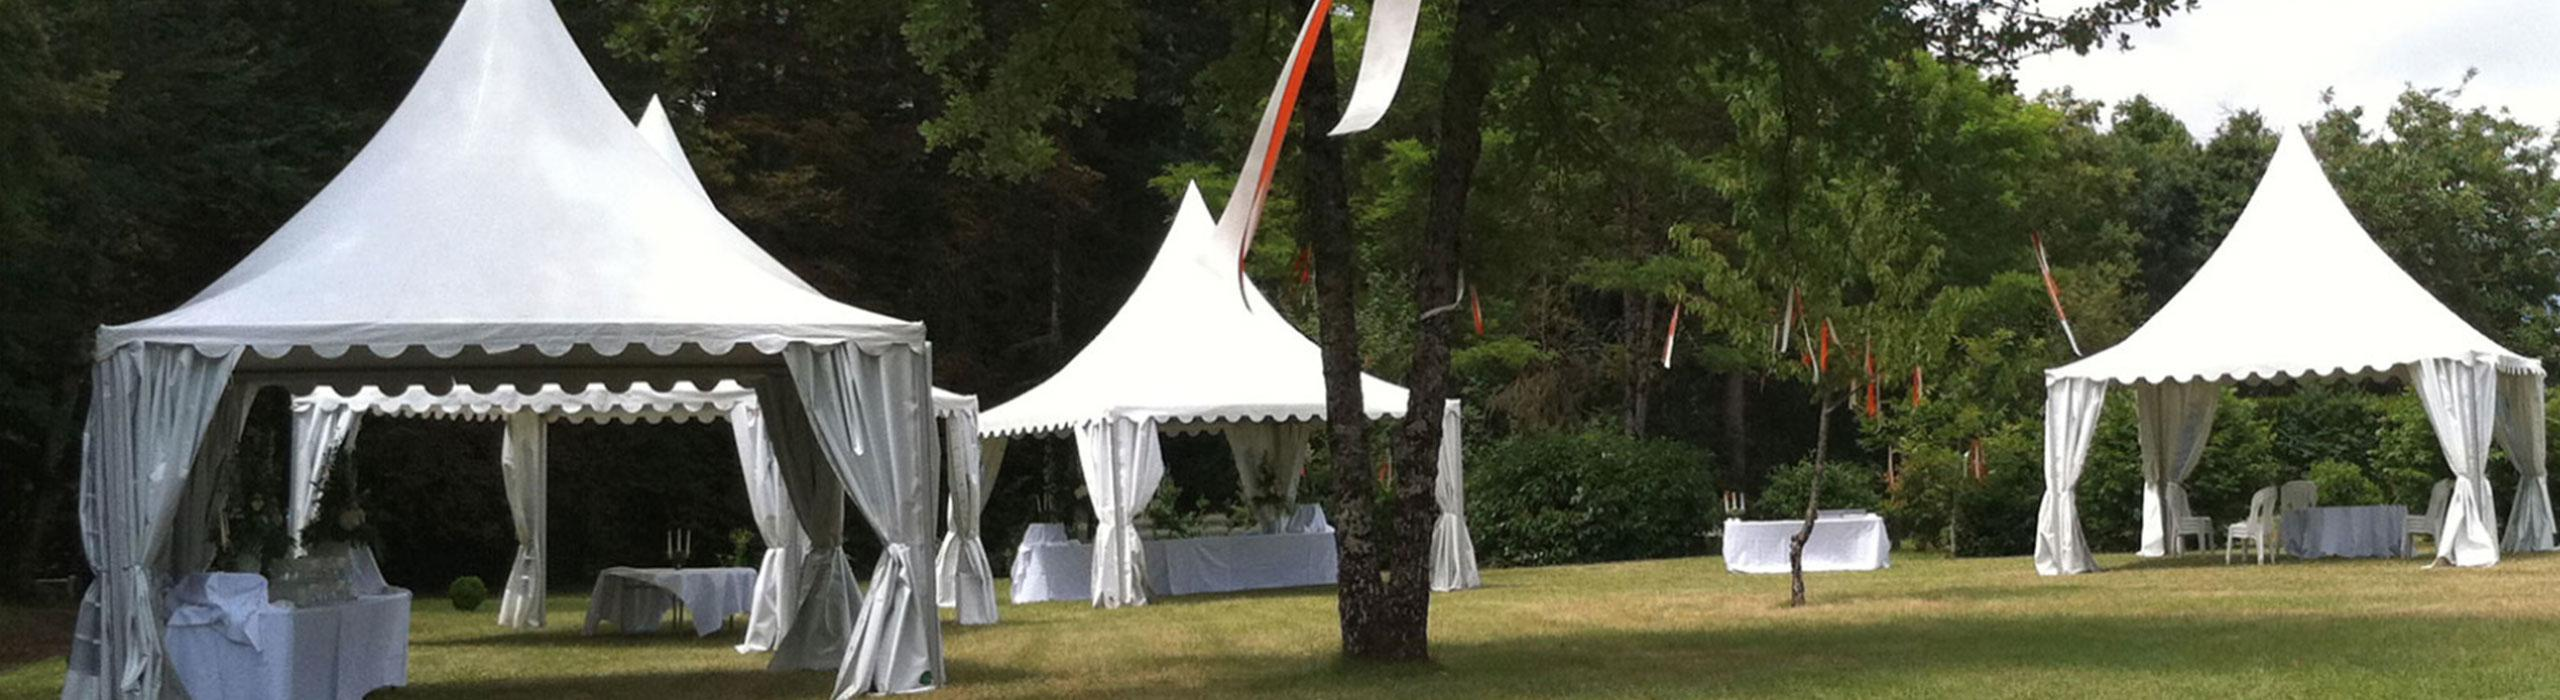 eventcom-garden4x4-reception-privee-jpg